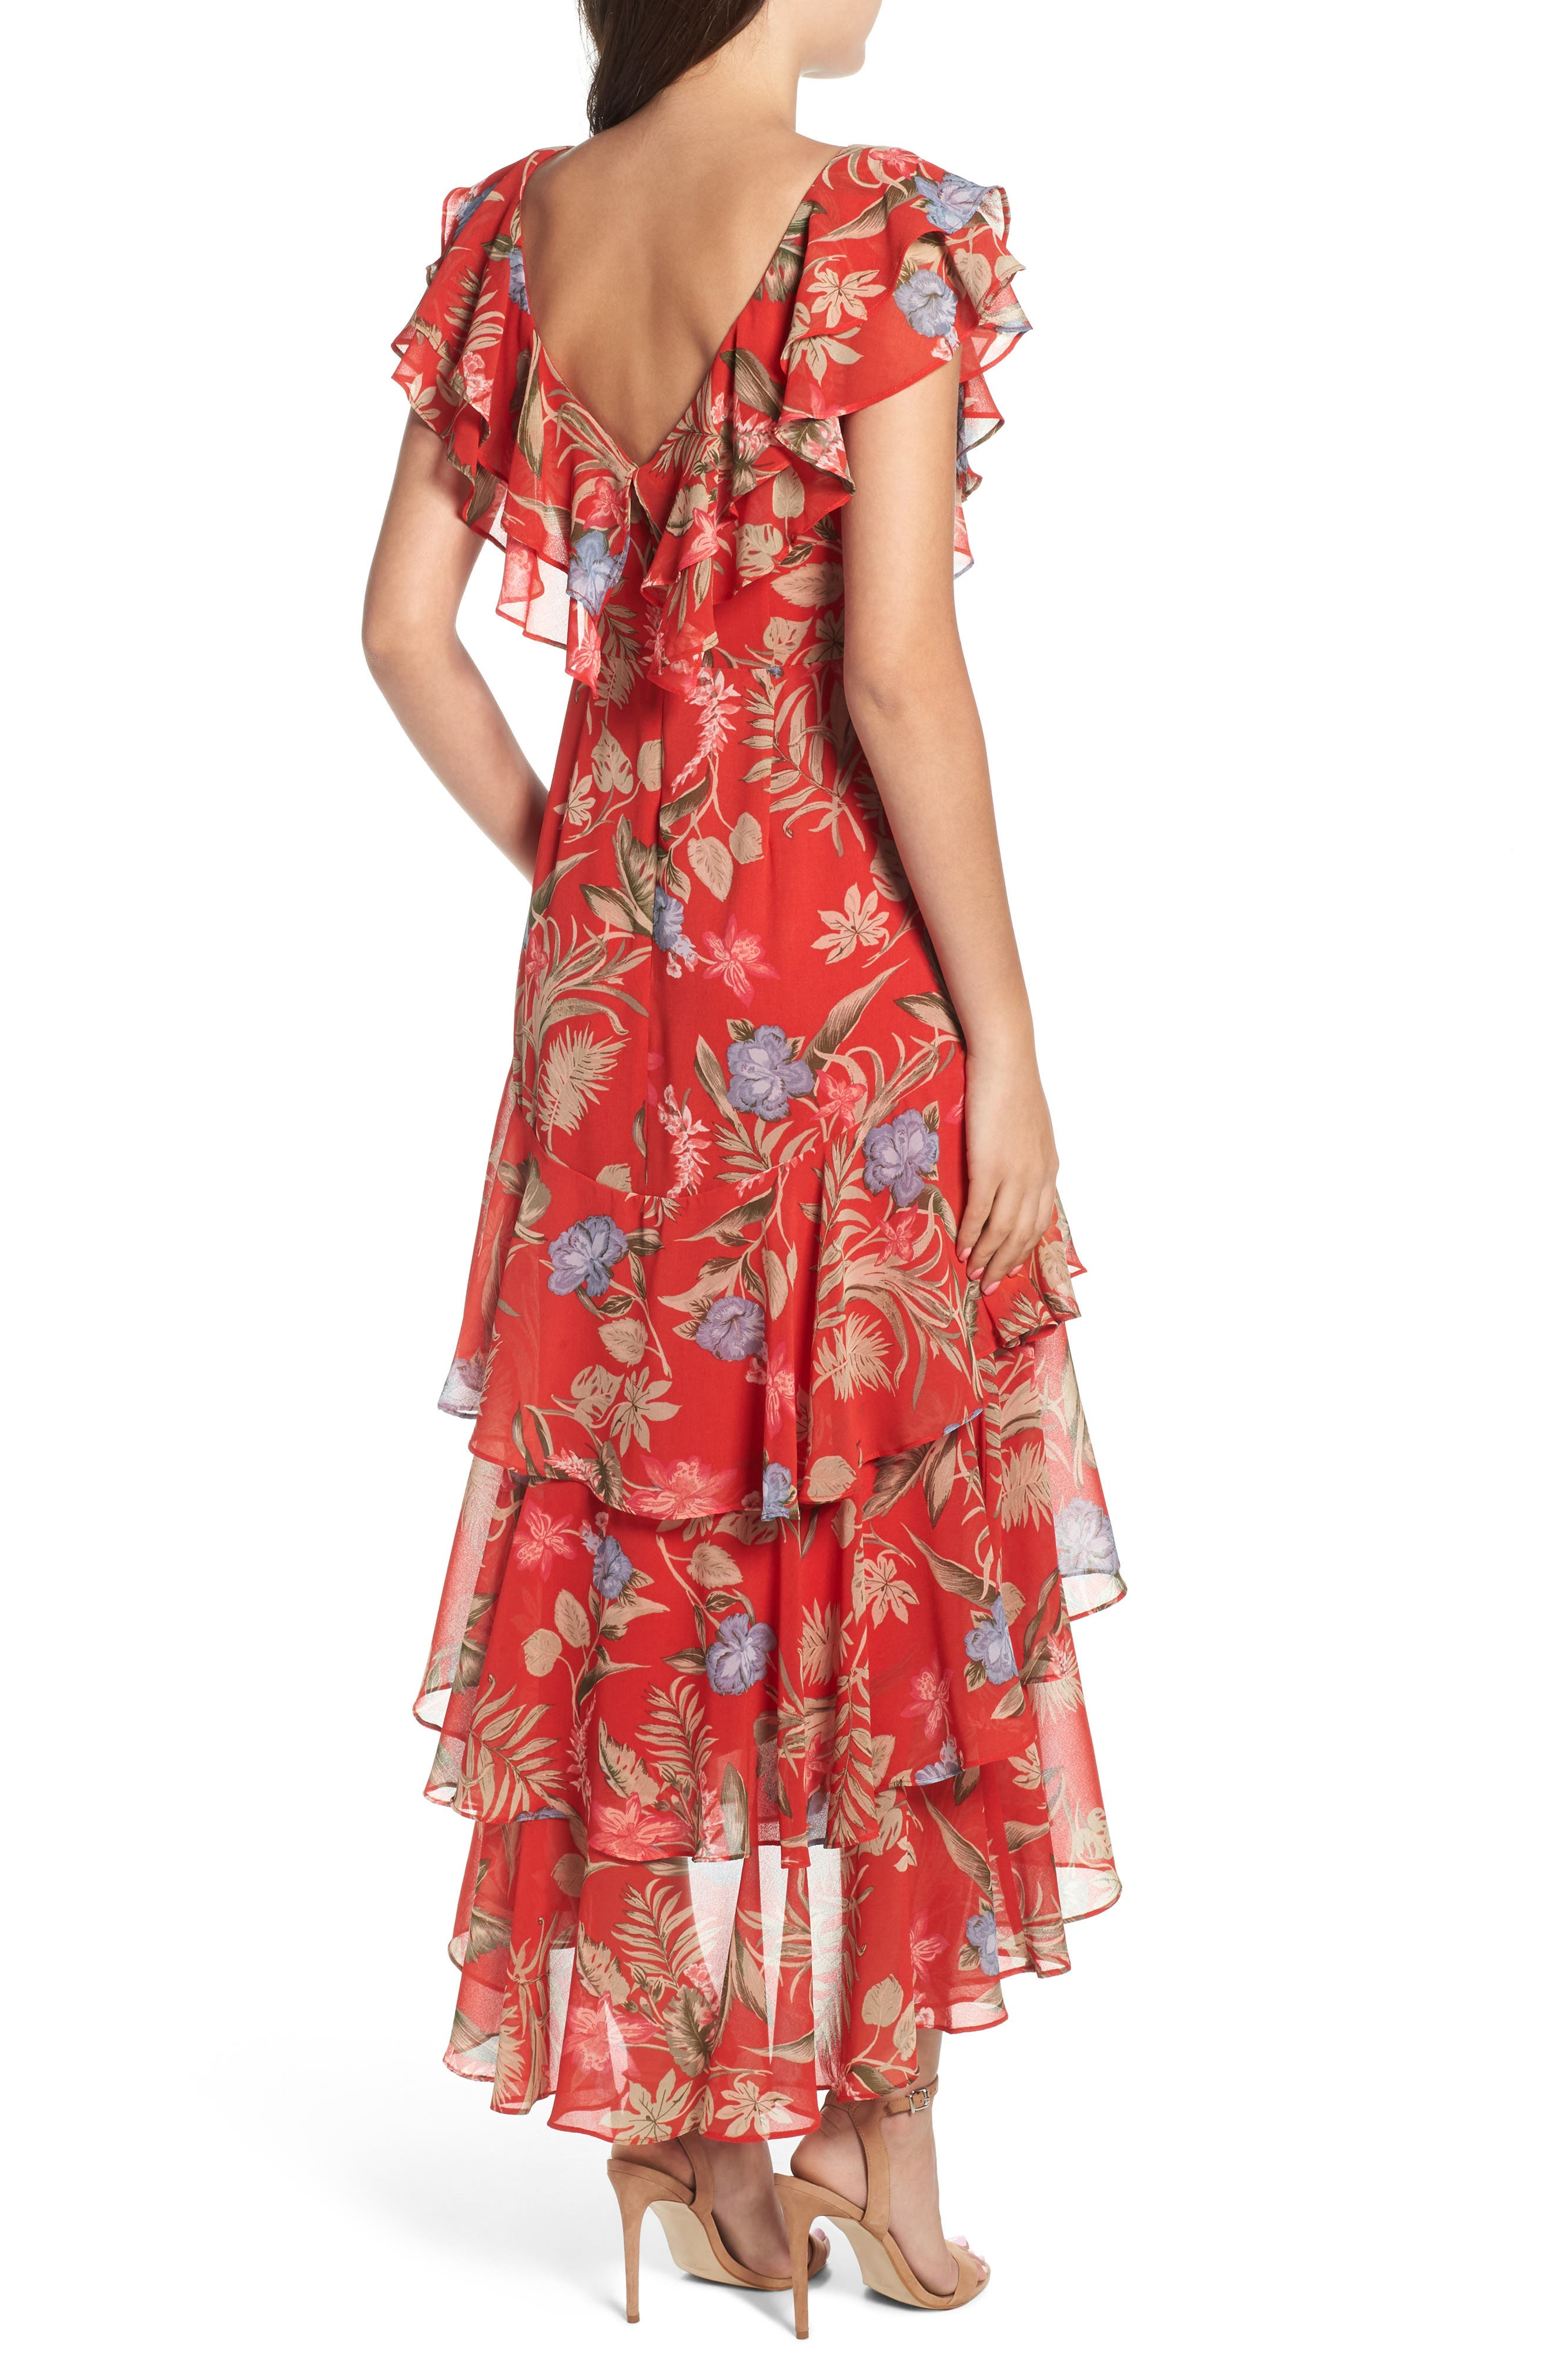 Chelsea Tiered Ruffle Maxi Dress,                             Alternate thumbnail 2, color,                             Red Tropical